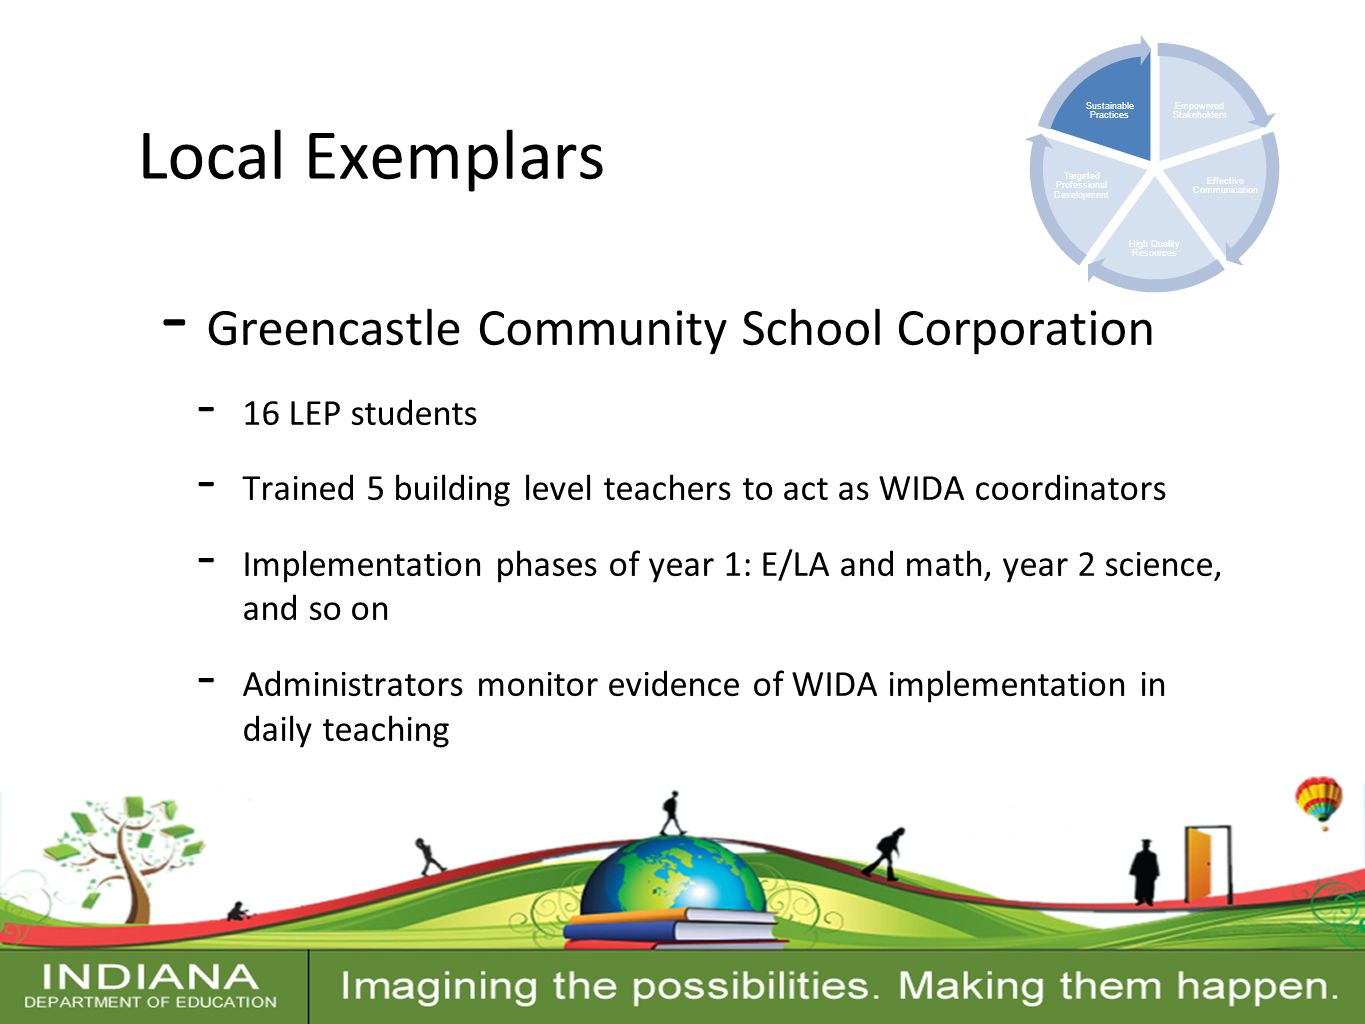 Contact Information Local Exemplars - Greencastle Community School Corporation - 16 LEP students - Trained 5 building level teachers to act as WIDA coordinators - Implementation phases of year 1: E/LA and math, year 2 science, and so on - Administrators monitor evidence of WIDA implementation in daily teaching Empowered Stakeholders Effective Communication High Quality Resources Targeted Professional Development Sustainable Practices